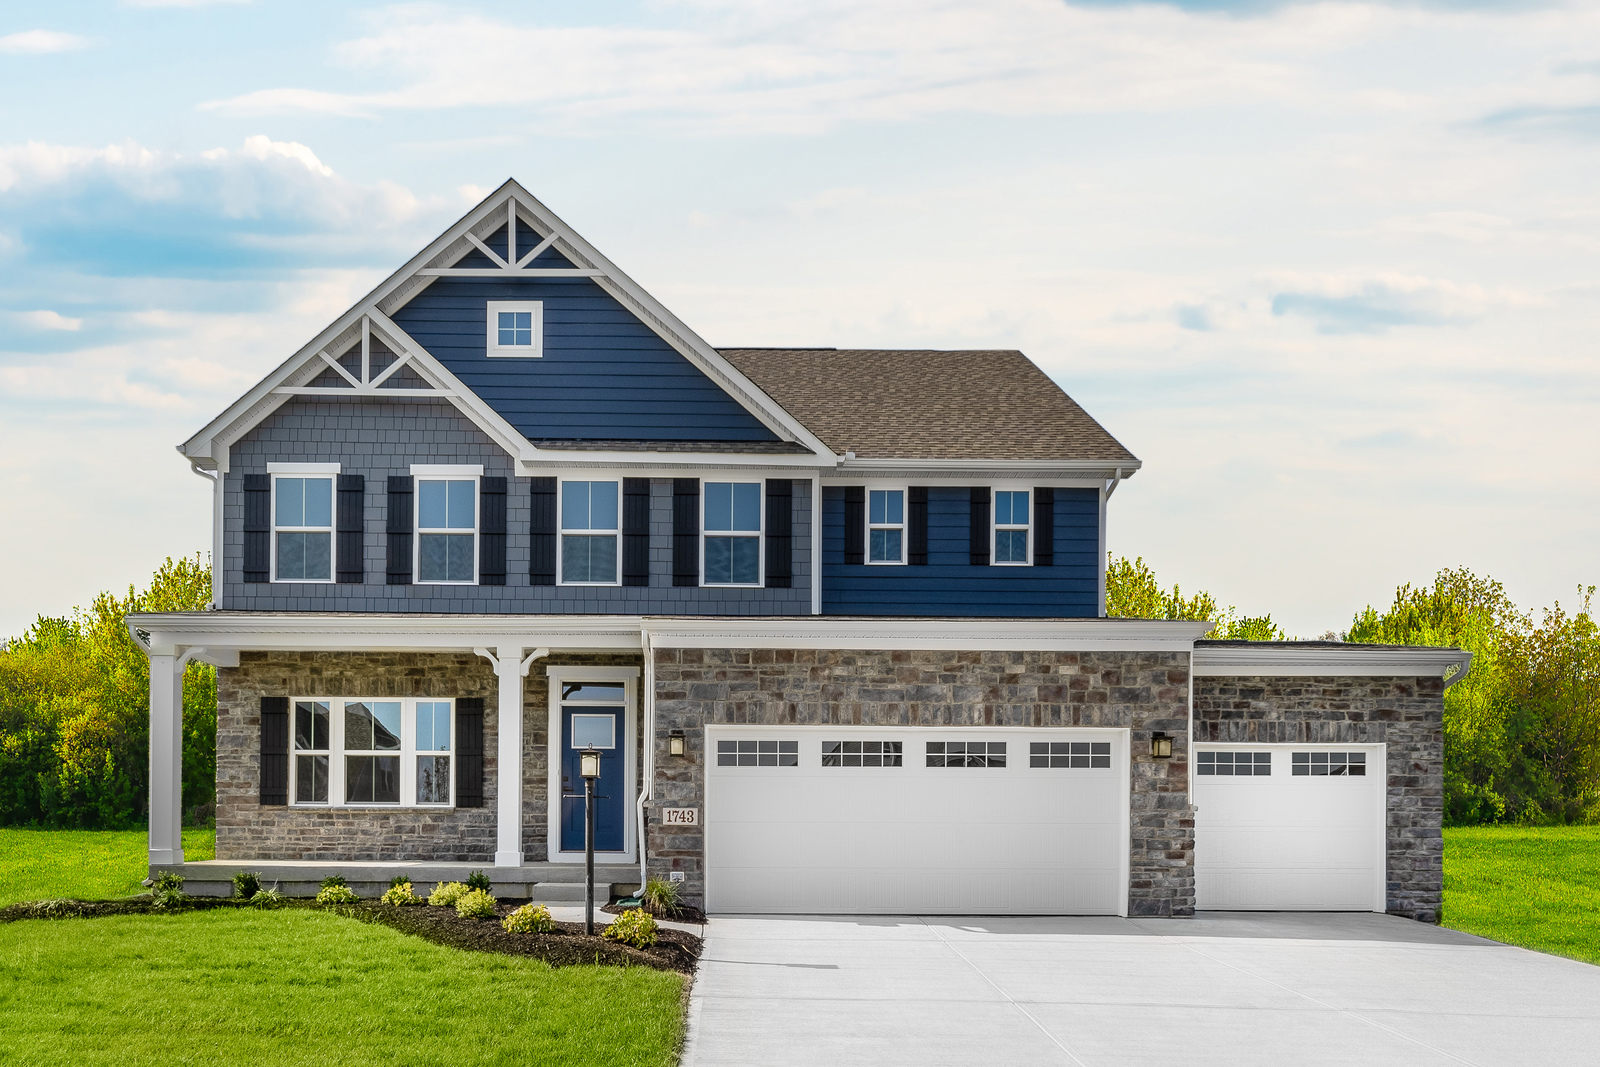 New Homes for sale at The Conservancy in Gilberts, IL within